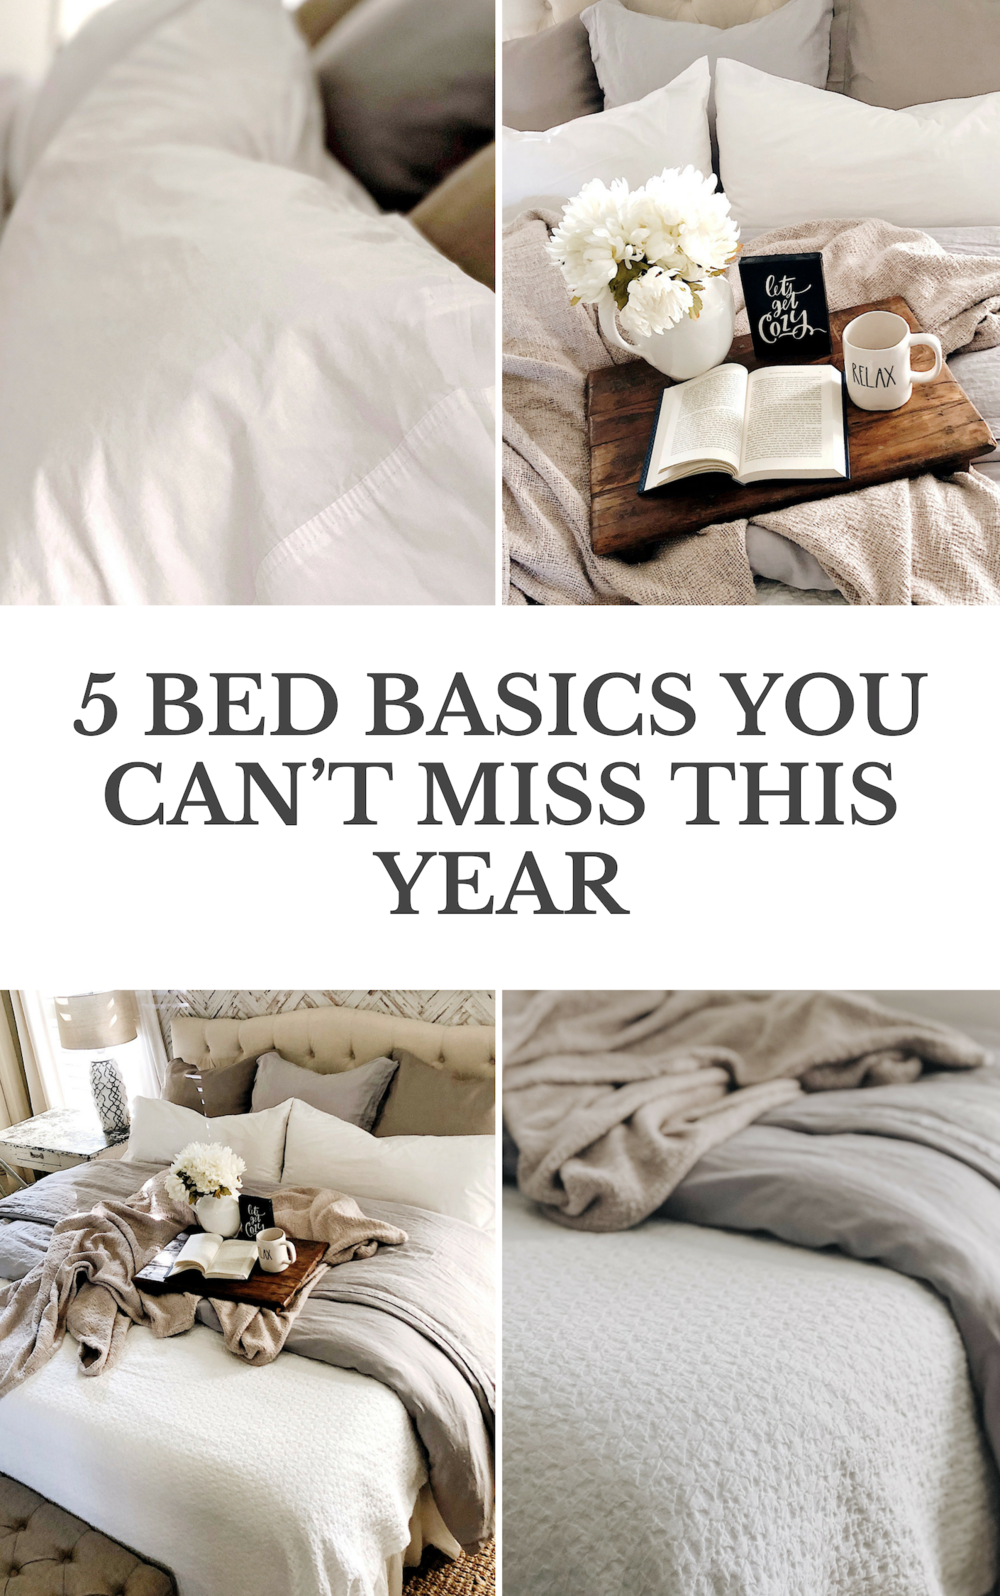 5 bed basics you can't miss this year.png